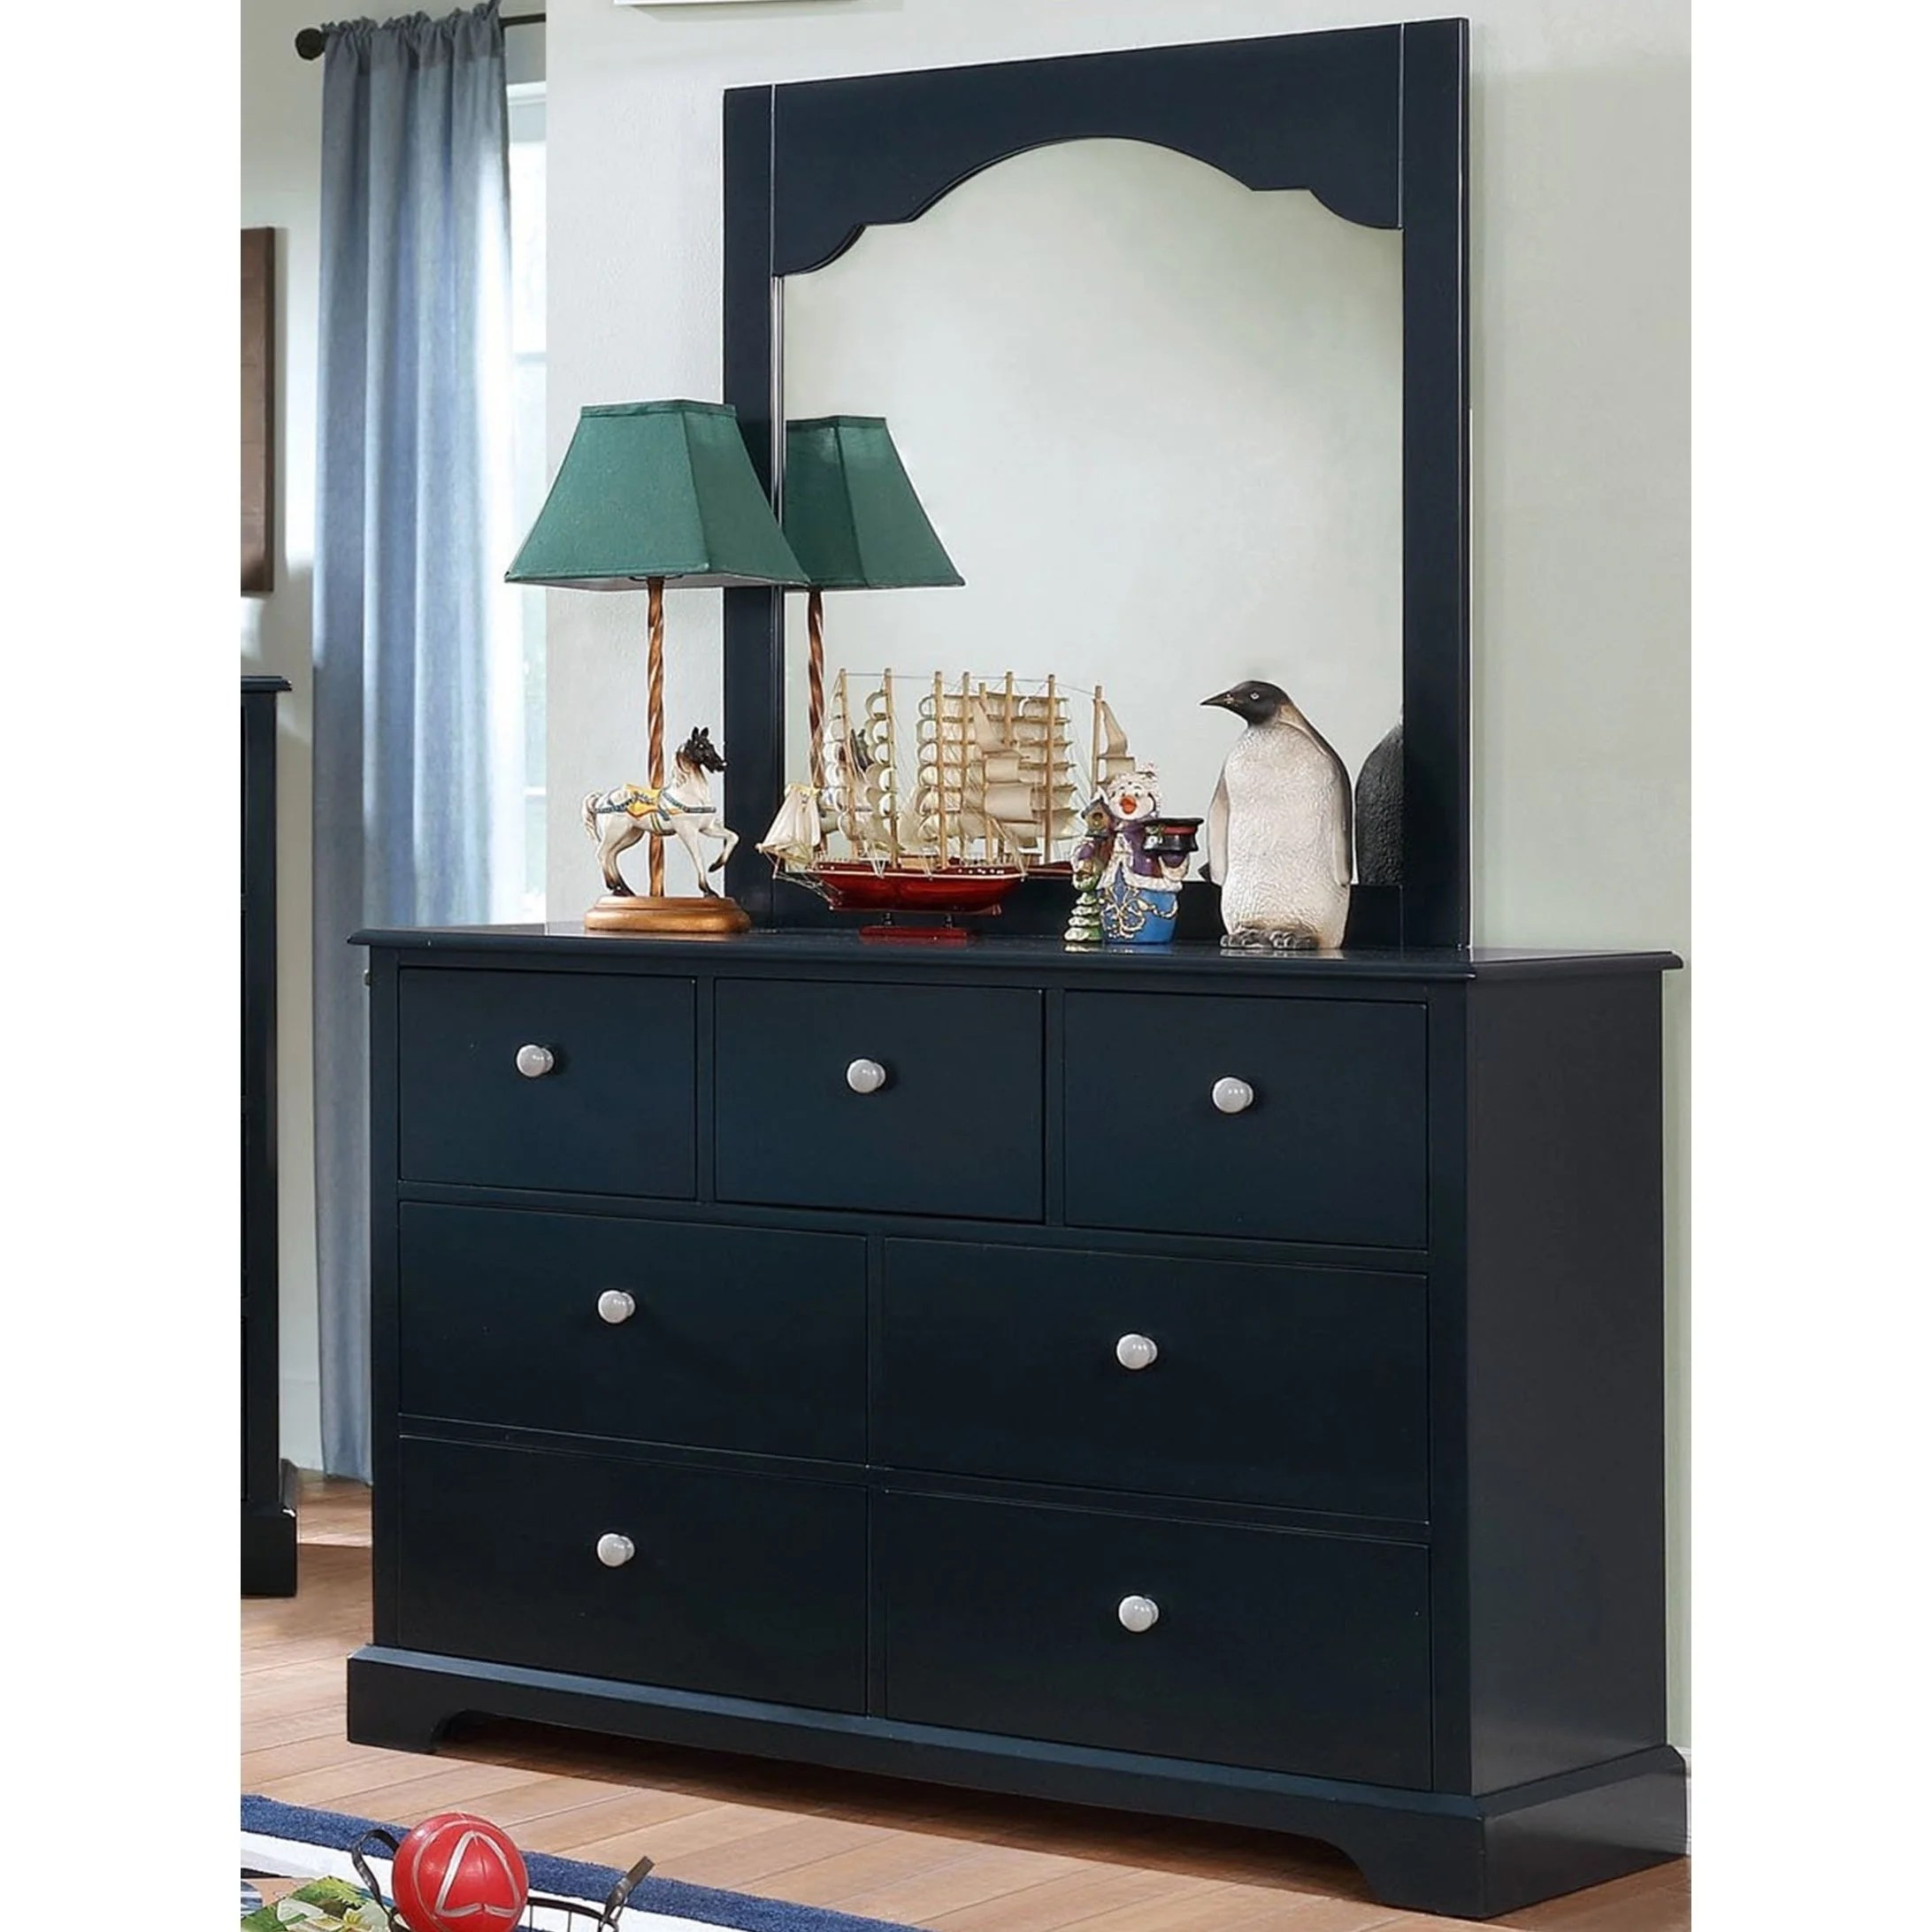 buy dressers chests online